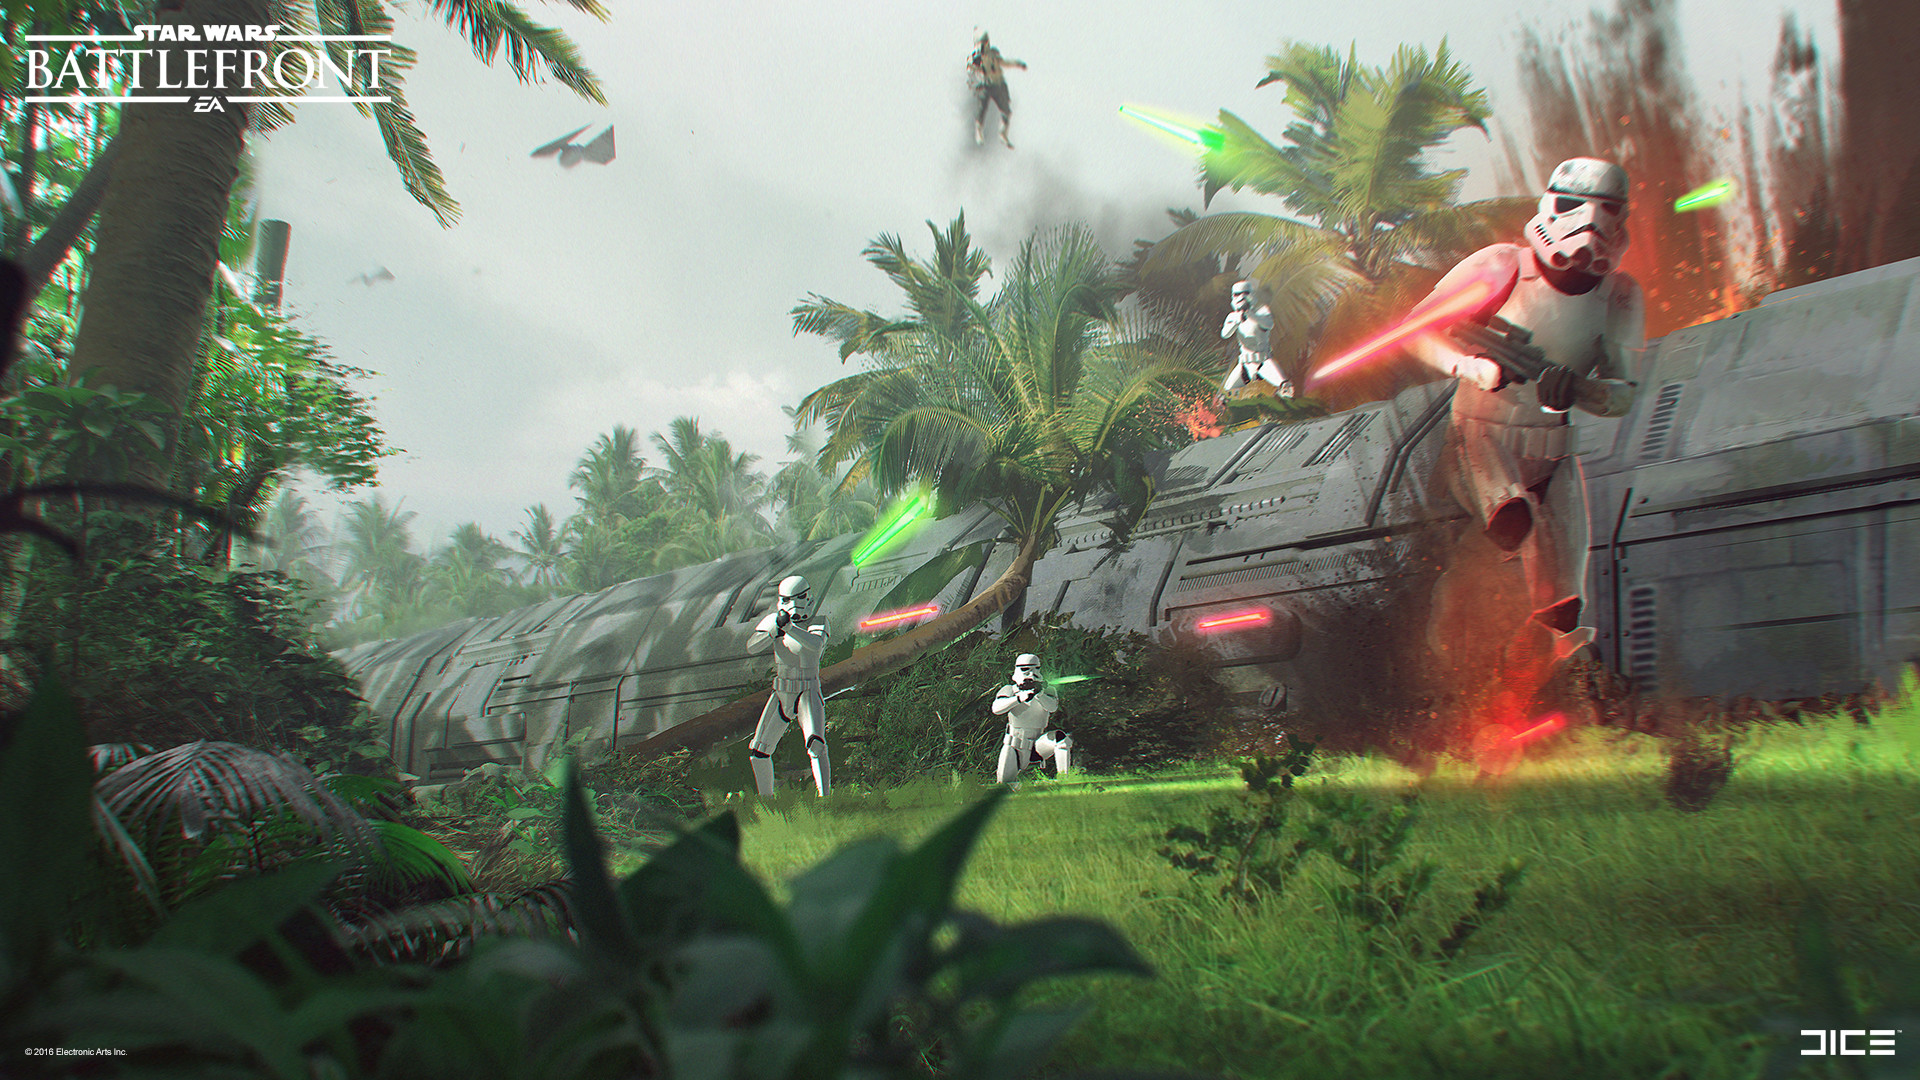 Star Wars Battlefront Rogue One Concept Art